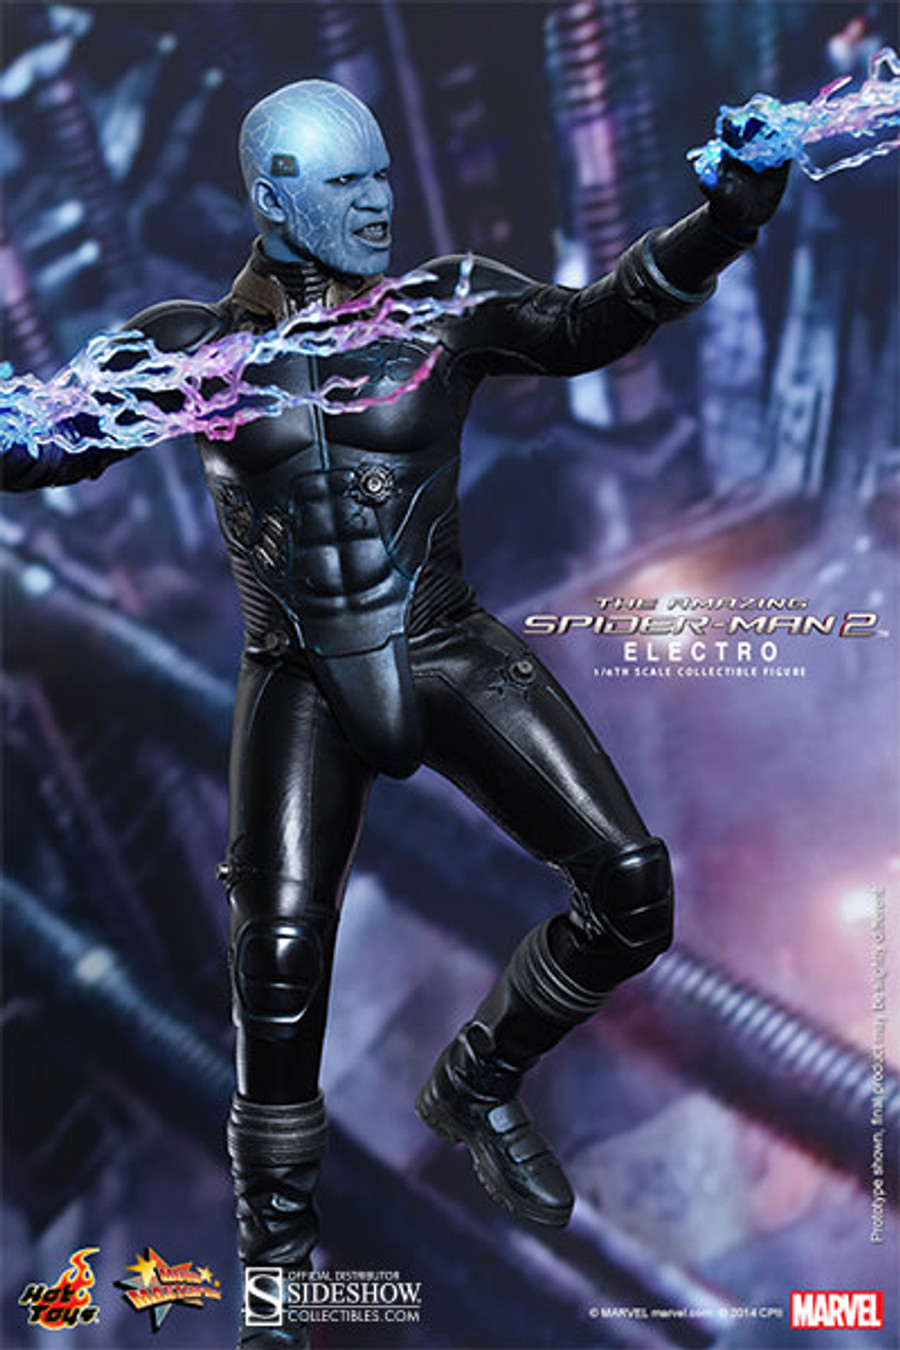 Hot Toys - Electro - The Amazing Spider-Man 2